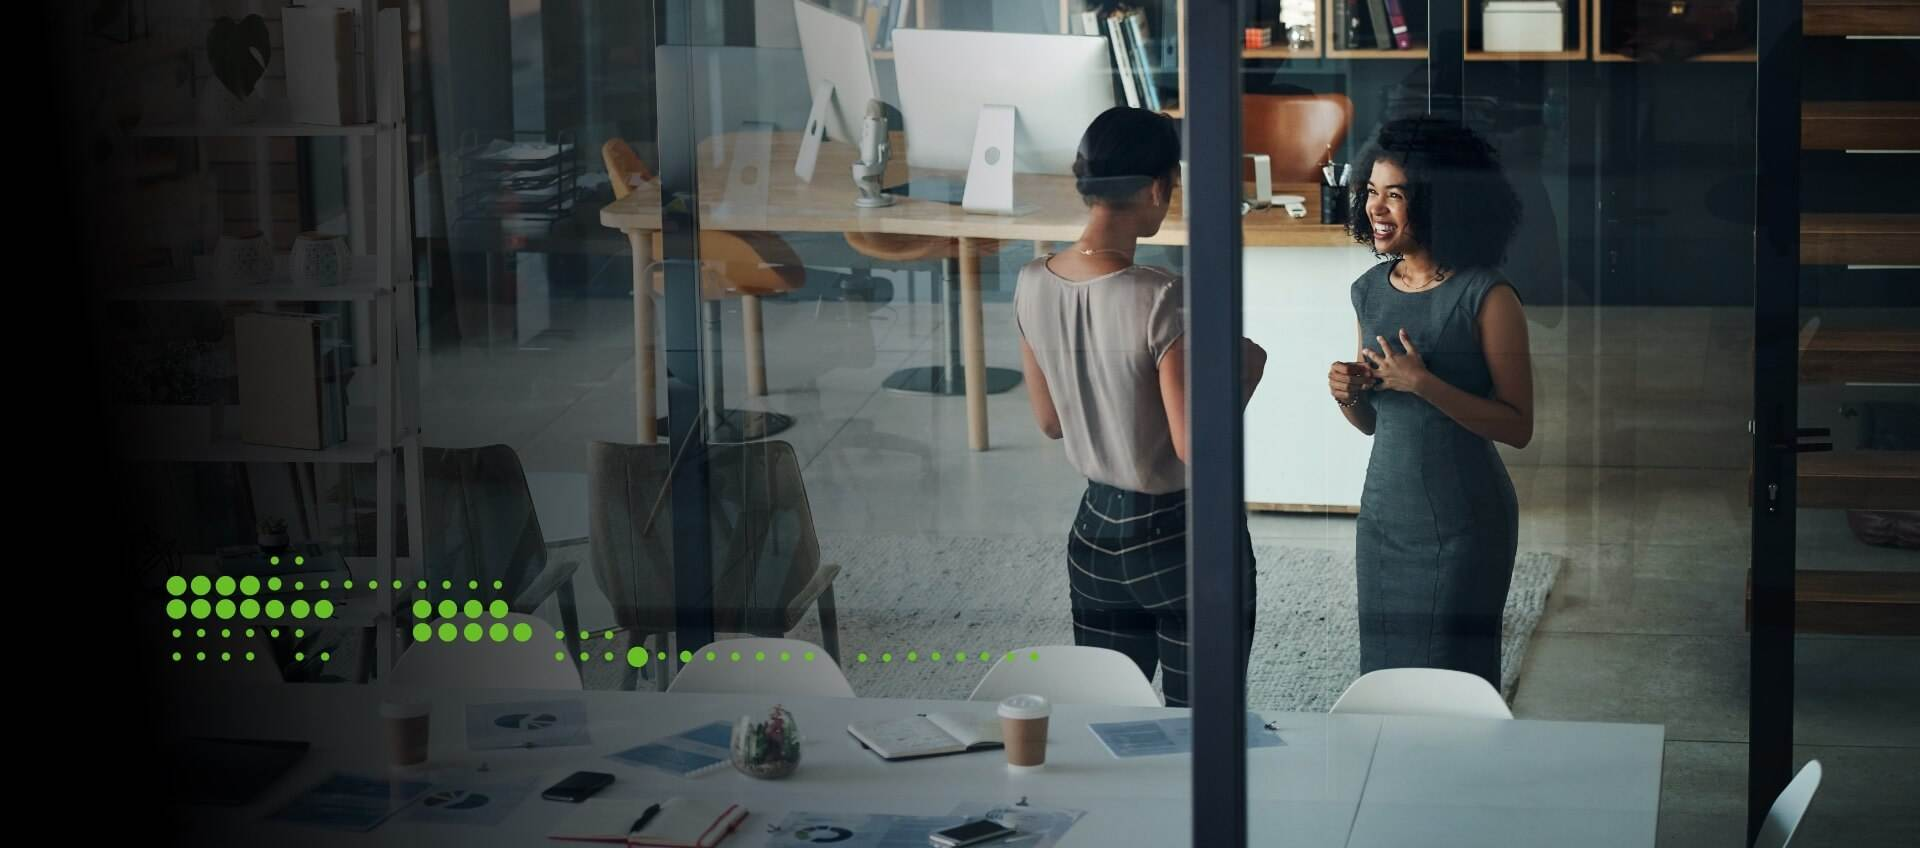 DIMENSION DATA LAUNCHES WORKDAY HUMAN CAPITAL MANAGEMENT SOLUTION OFFERING IN SOUTH AFRICA